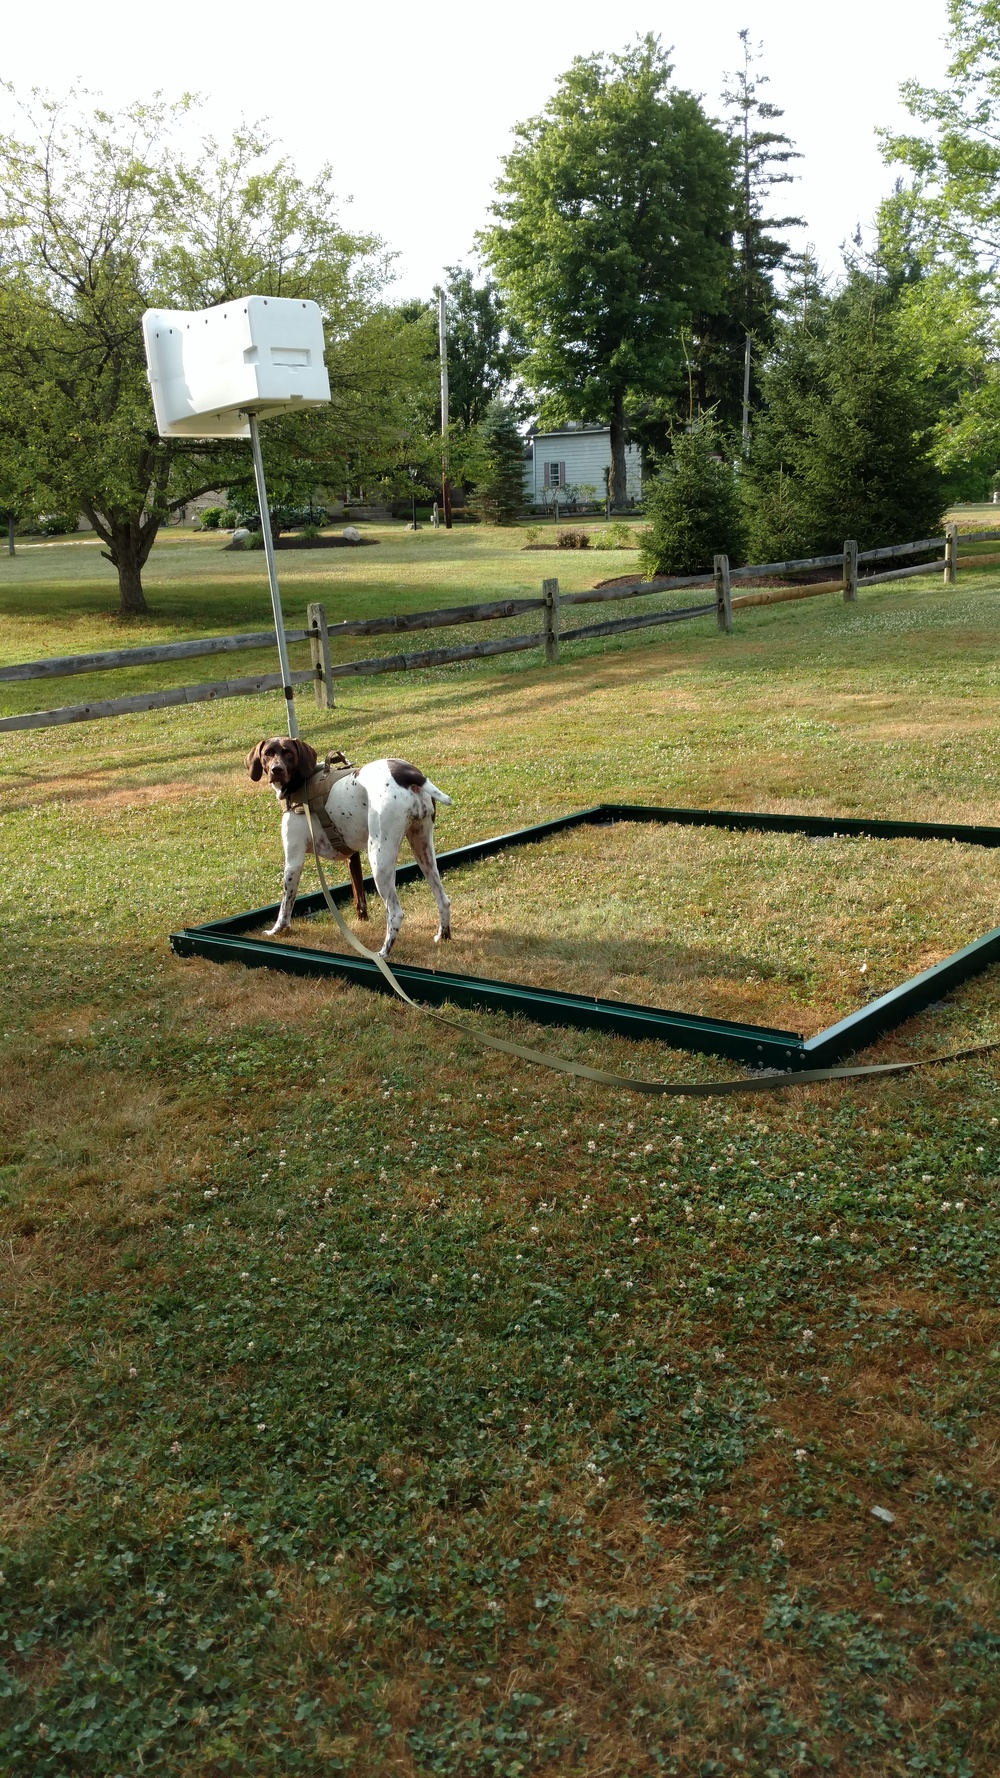 Cabela checking out the base. Do you see how dry and brown the grass is? This is nothing compared to part of the yard. Praying for rain. This weekend, the temps are suppose to soar to 97 degrees.